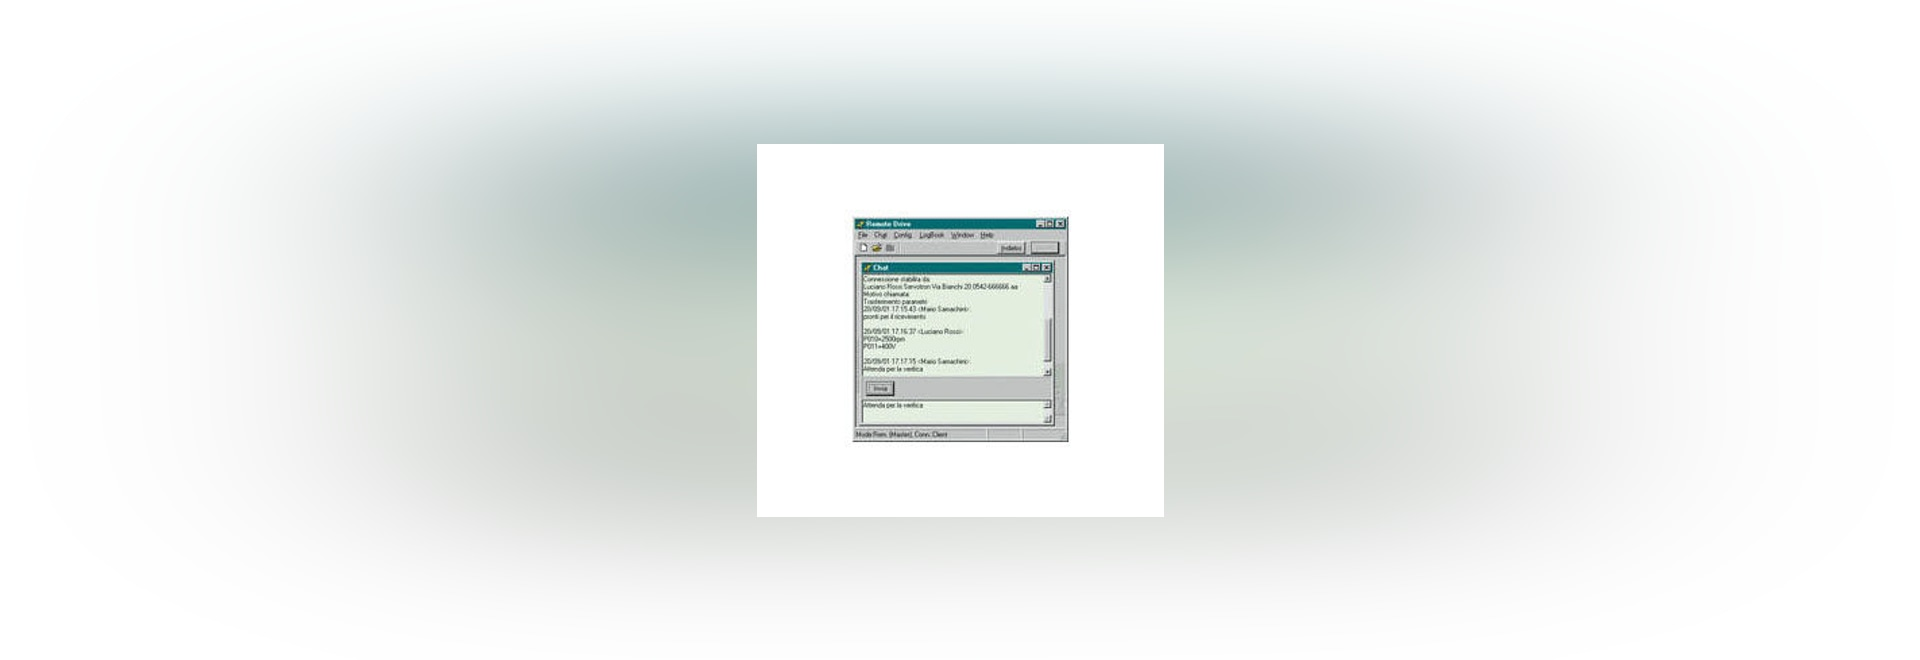 PV system software